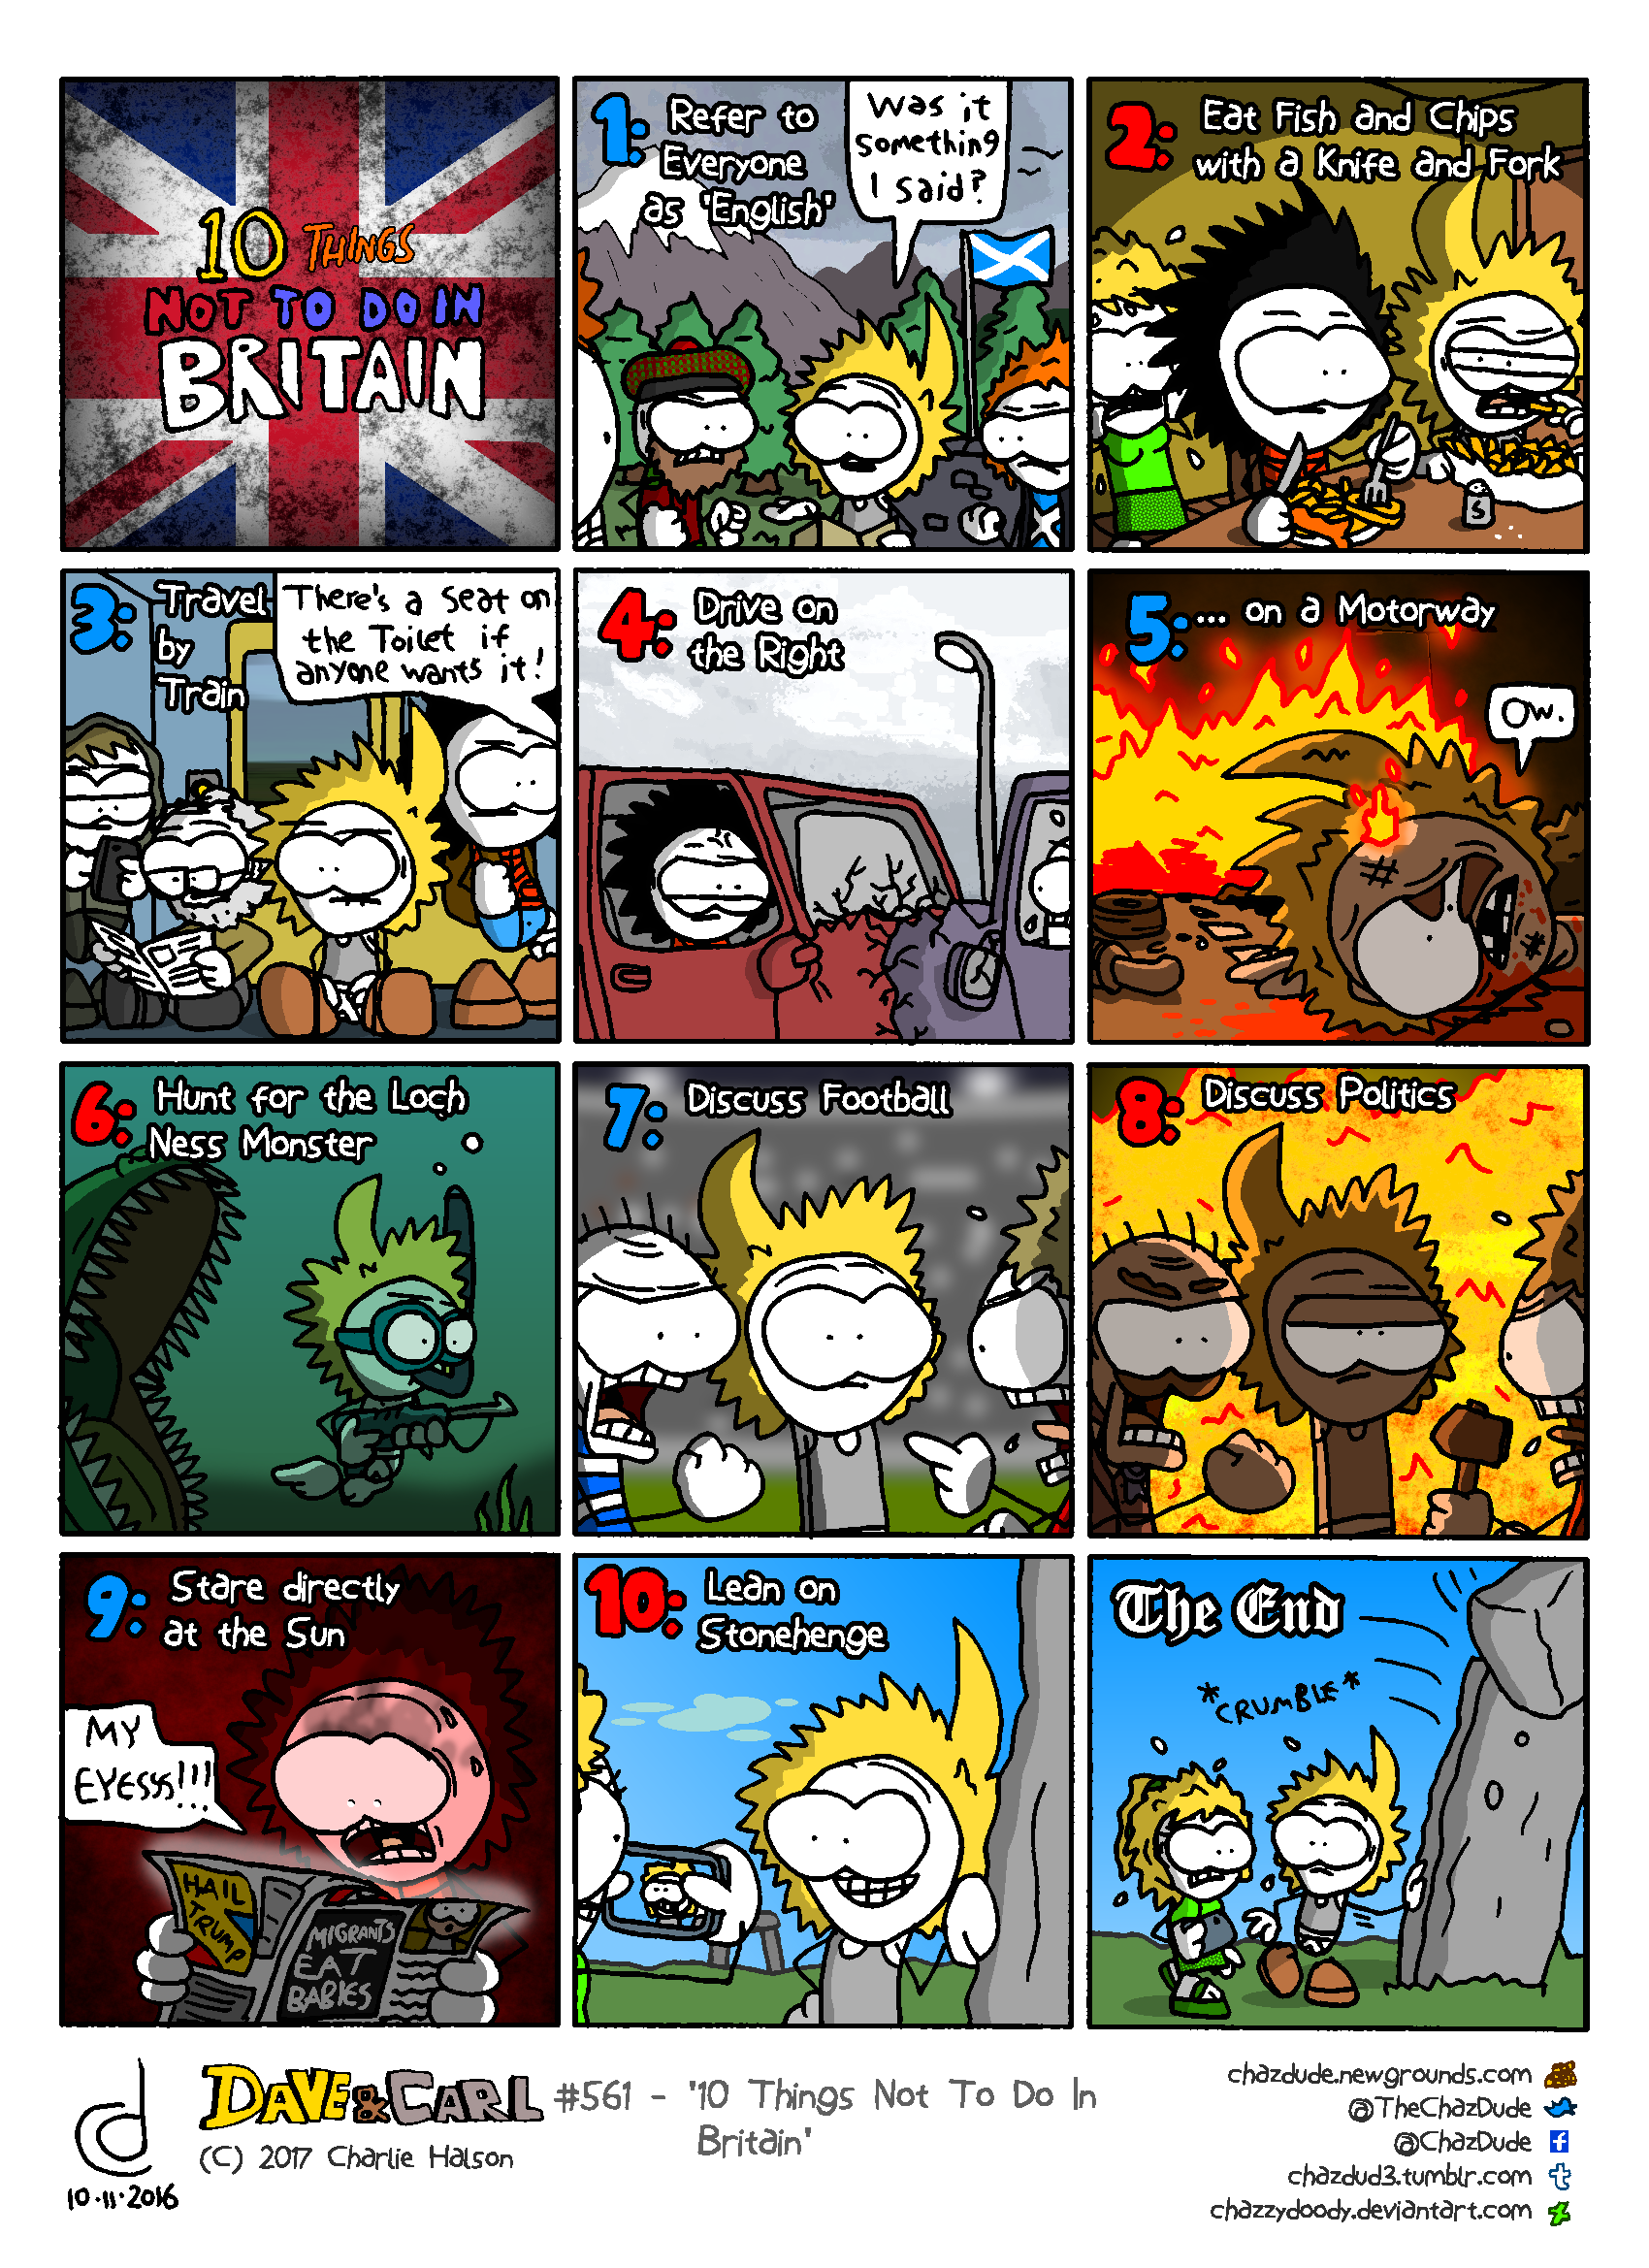 10 Things Not To Do In Britain